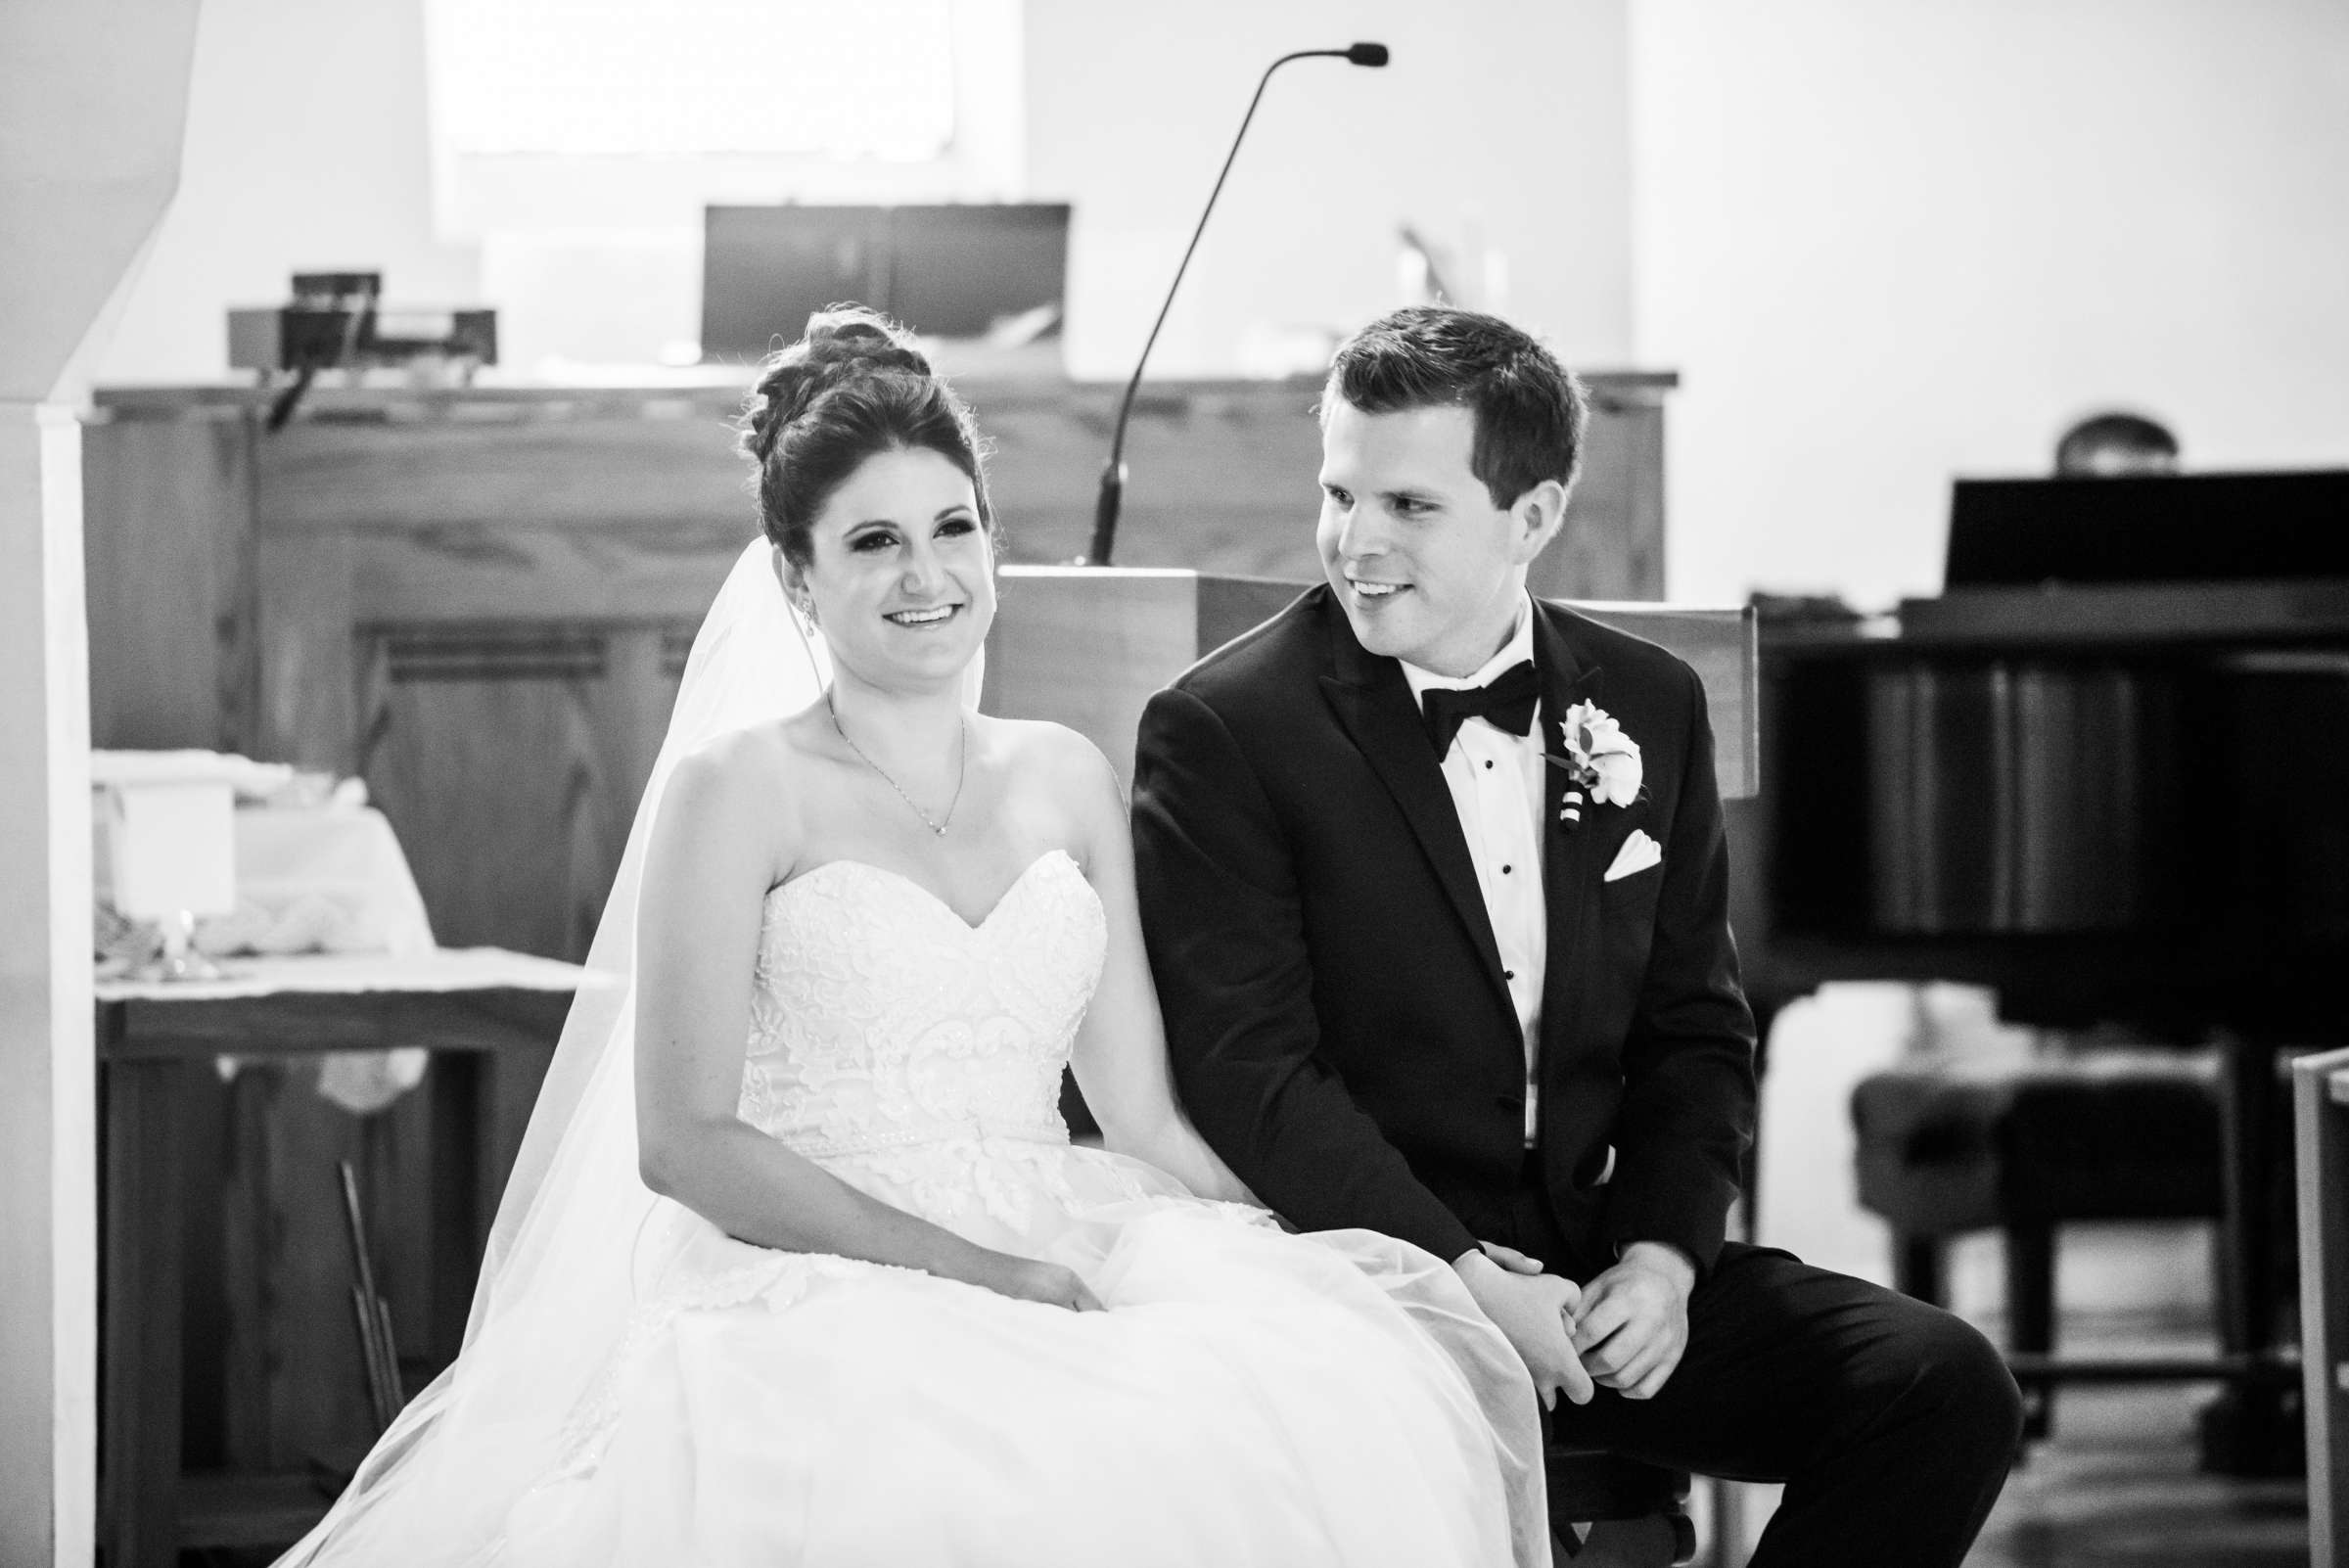 Bahia Hotel Wedding coordinated by I Do Weddings, Meredith and Jack Wedding Photo #35 by True Photography